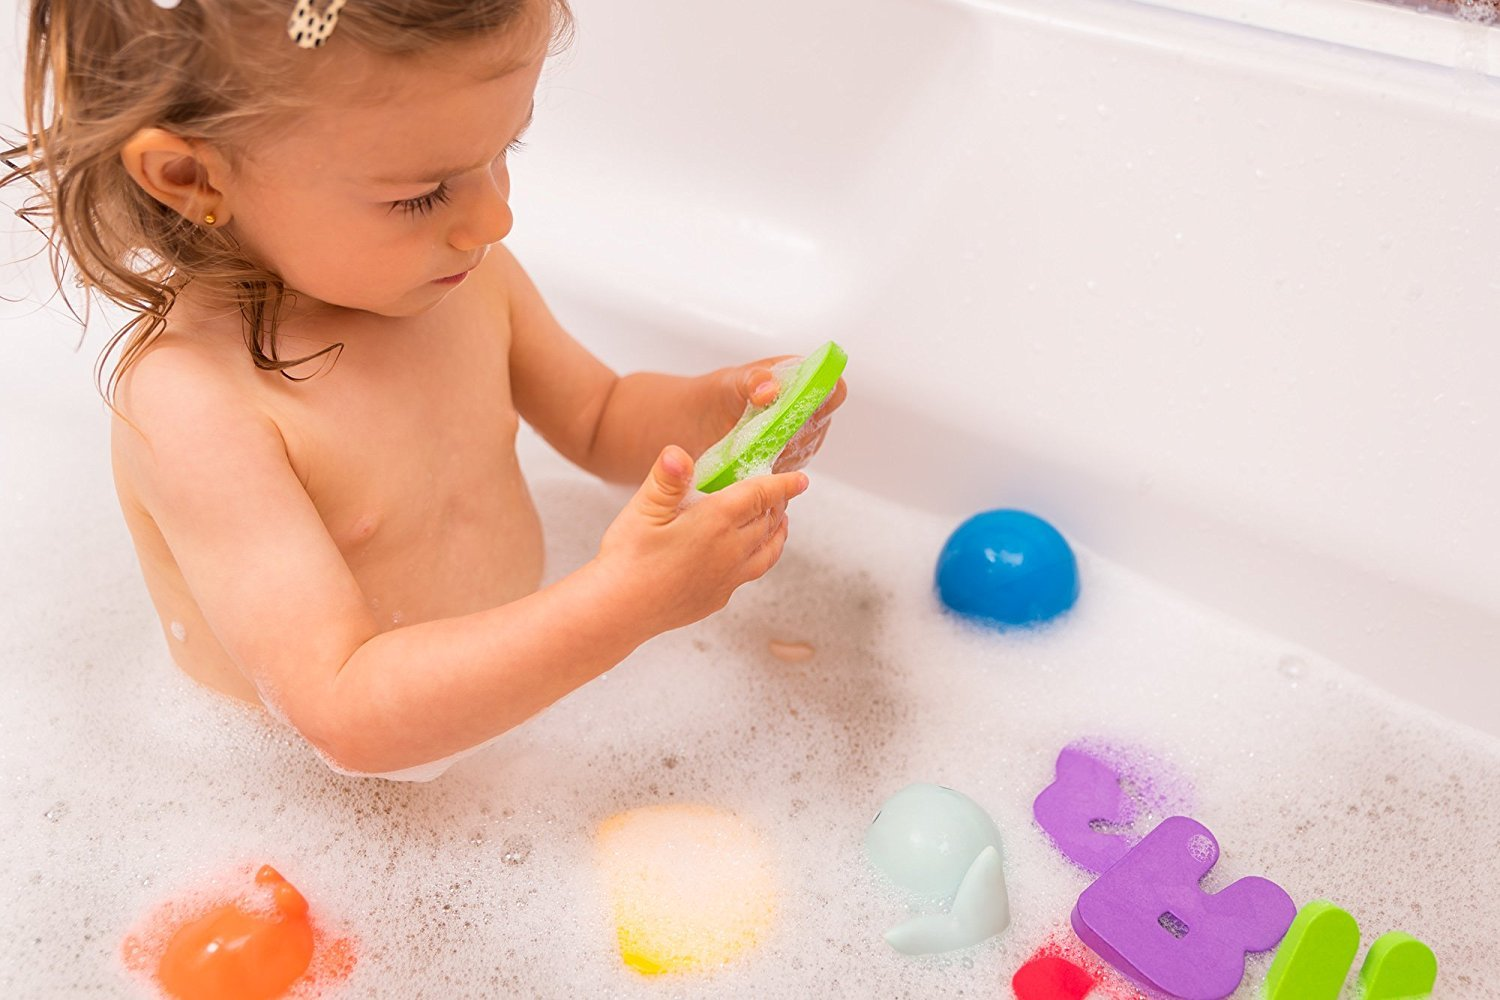 gufolino Baby Bath Toys - 36 Foam Letters and Numbers + Bathtub Toys Organizer and Inflatable Waterproof Book for Toddlers (Multicolor) by gufolino (Image #4)